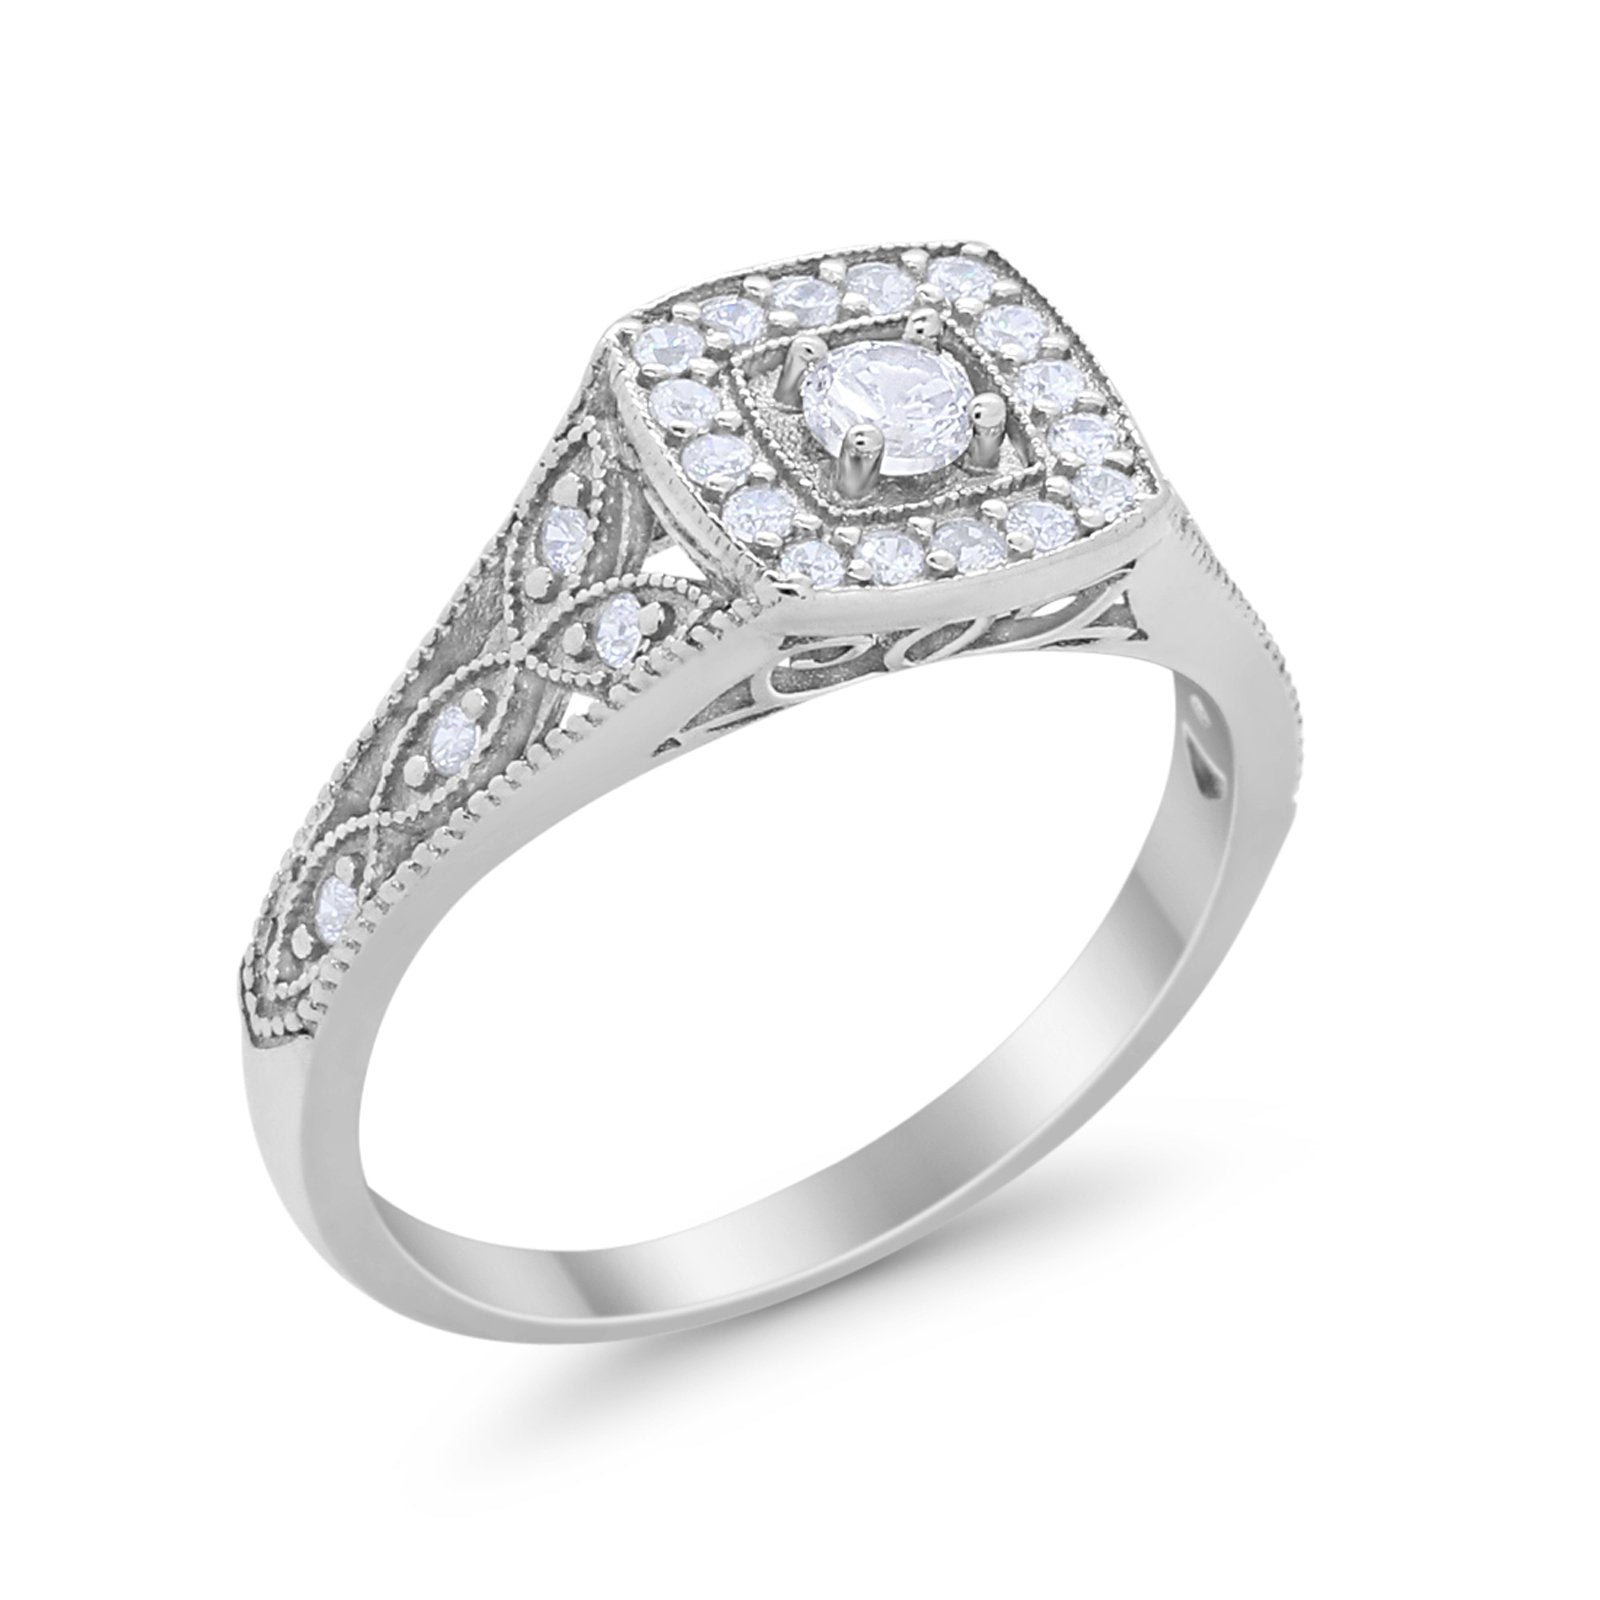 Art Deco Bridal Engagement Ring Simulated CZ 925 Sterling Silver